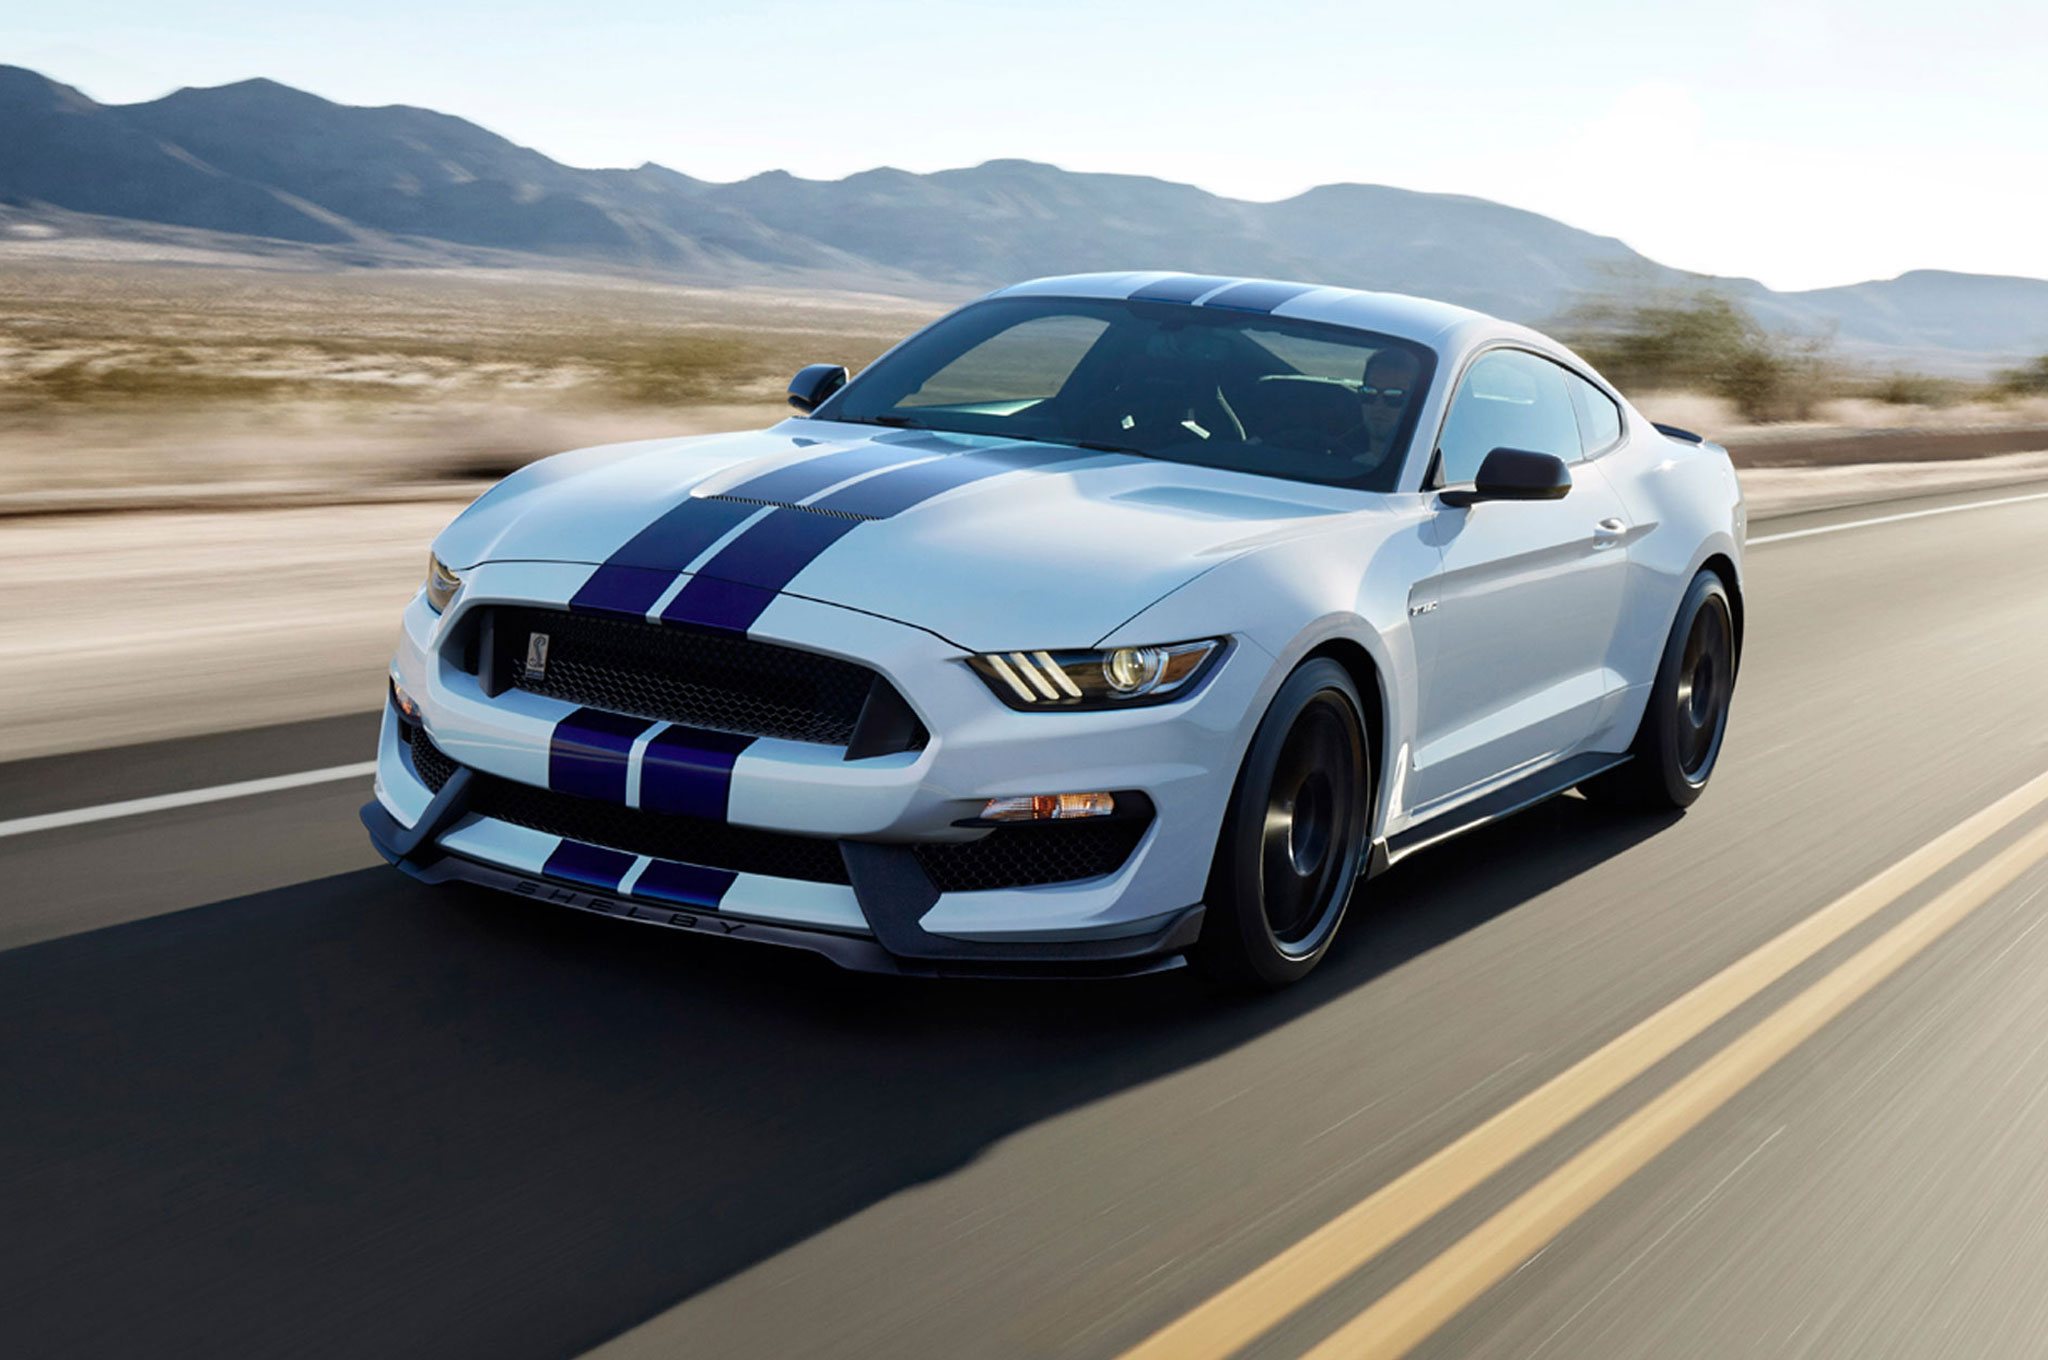 2016 Ford Shelby Gt350 Mustang Review 107 Adver To Skip 1